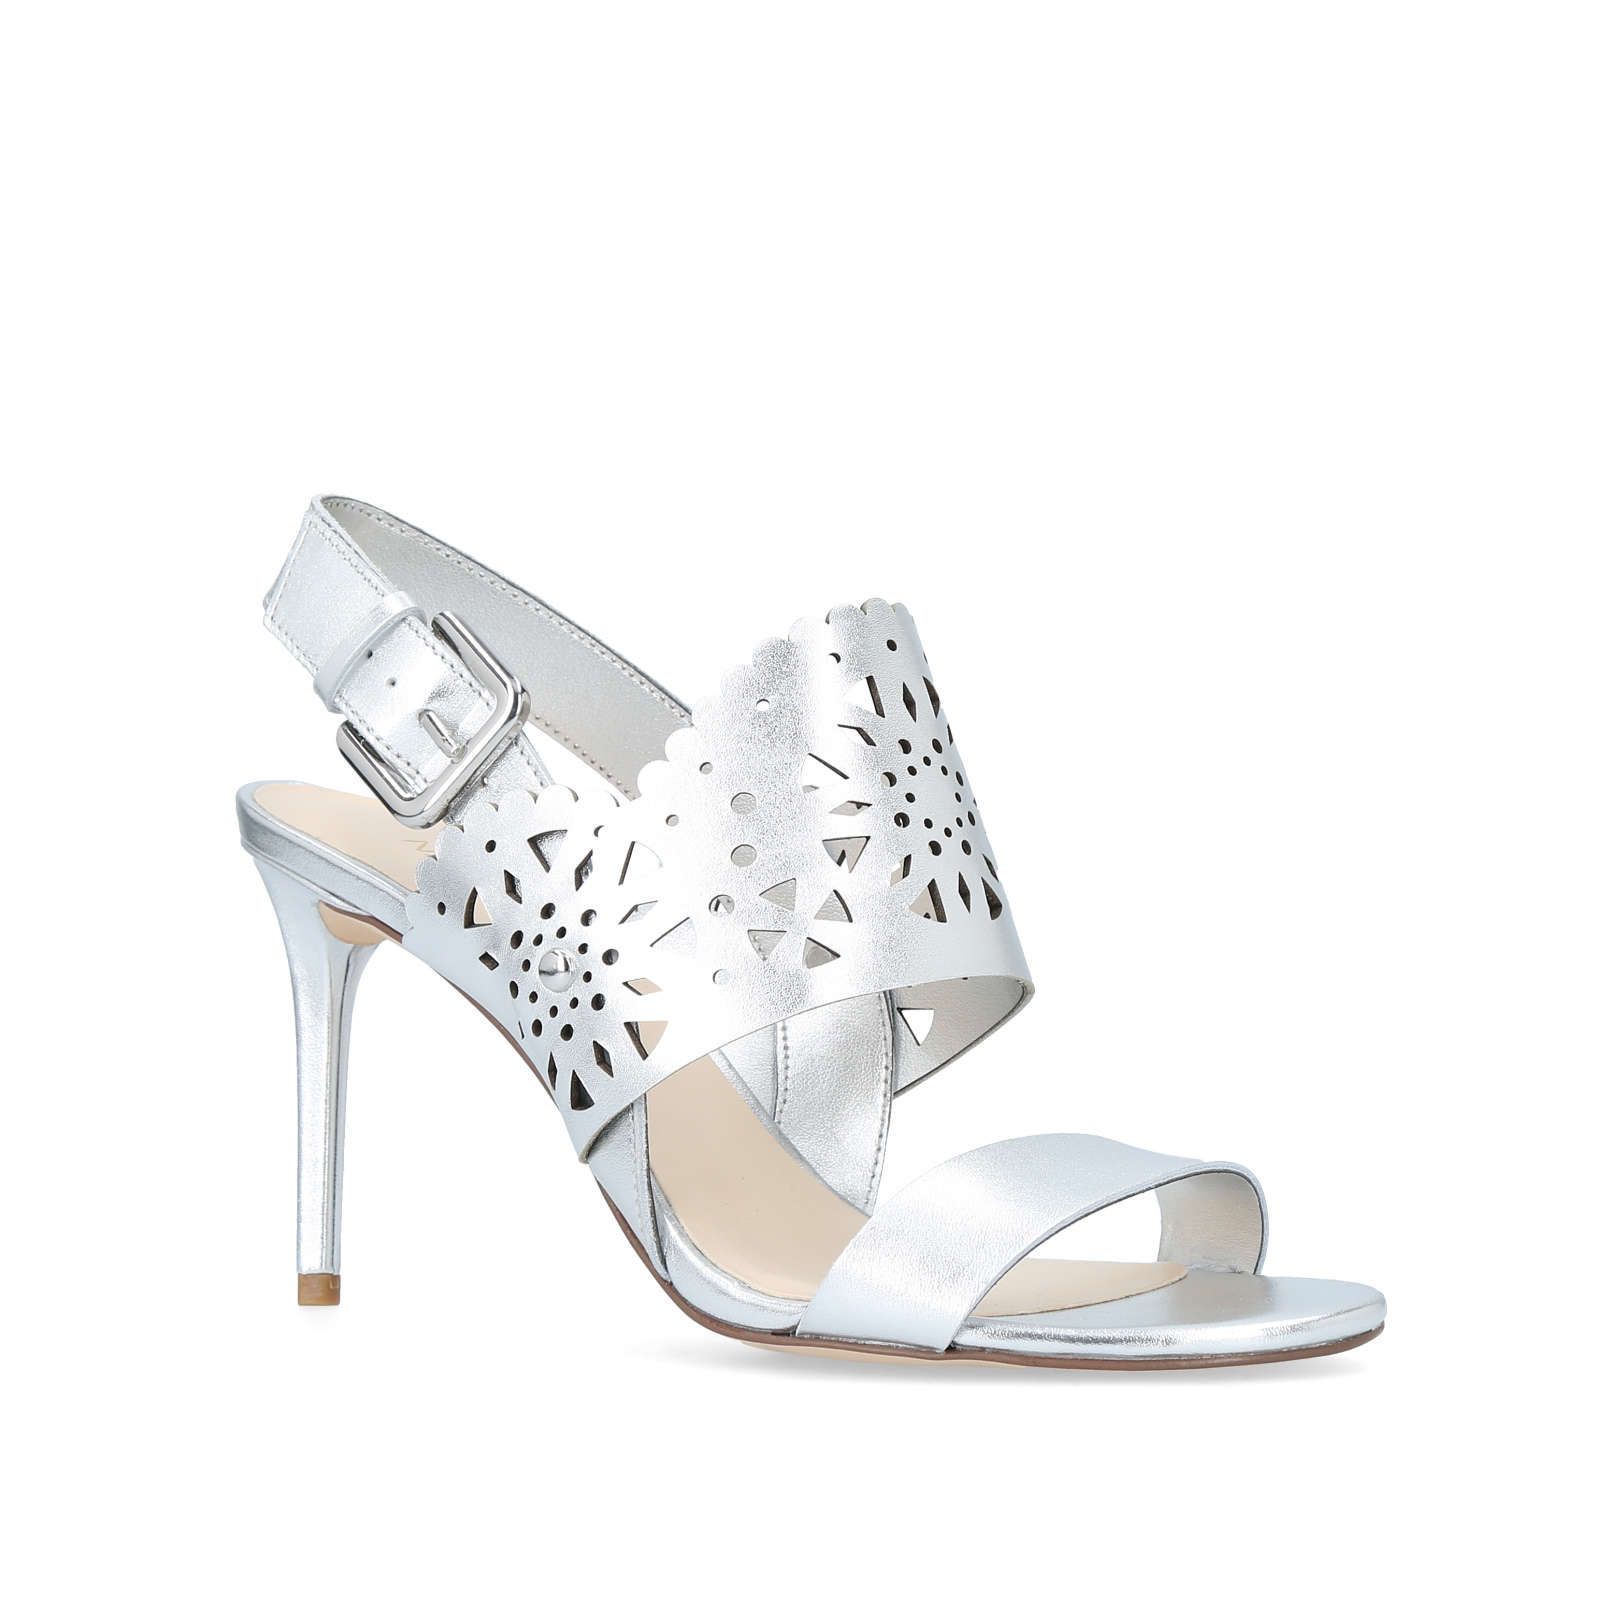 603ade018c59 RADHUNI Nine West Radhuni Silver Leather Occasion Heels